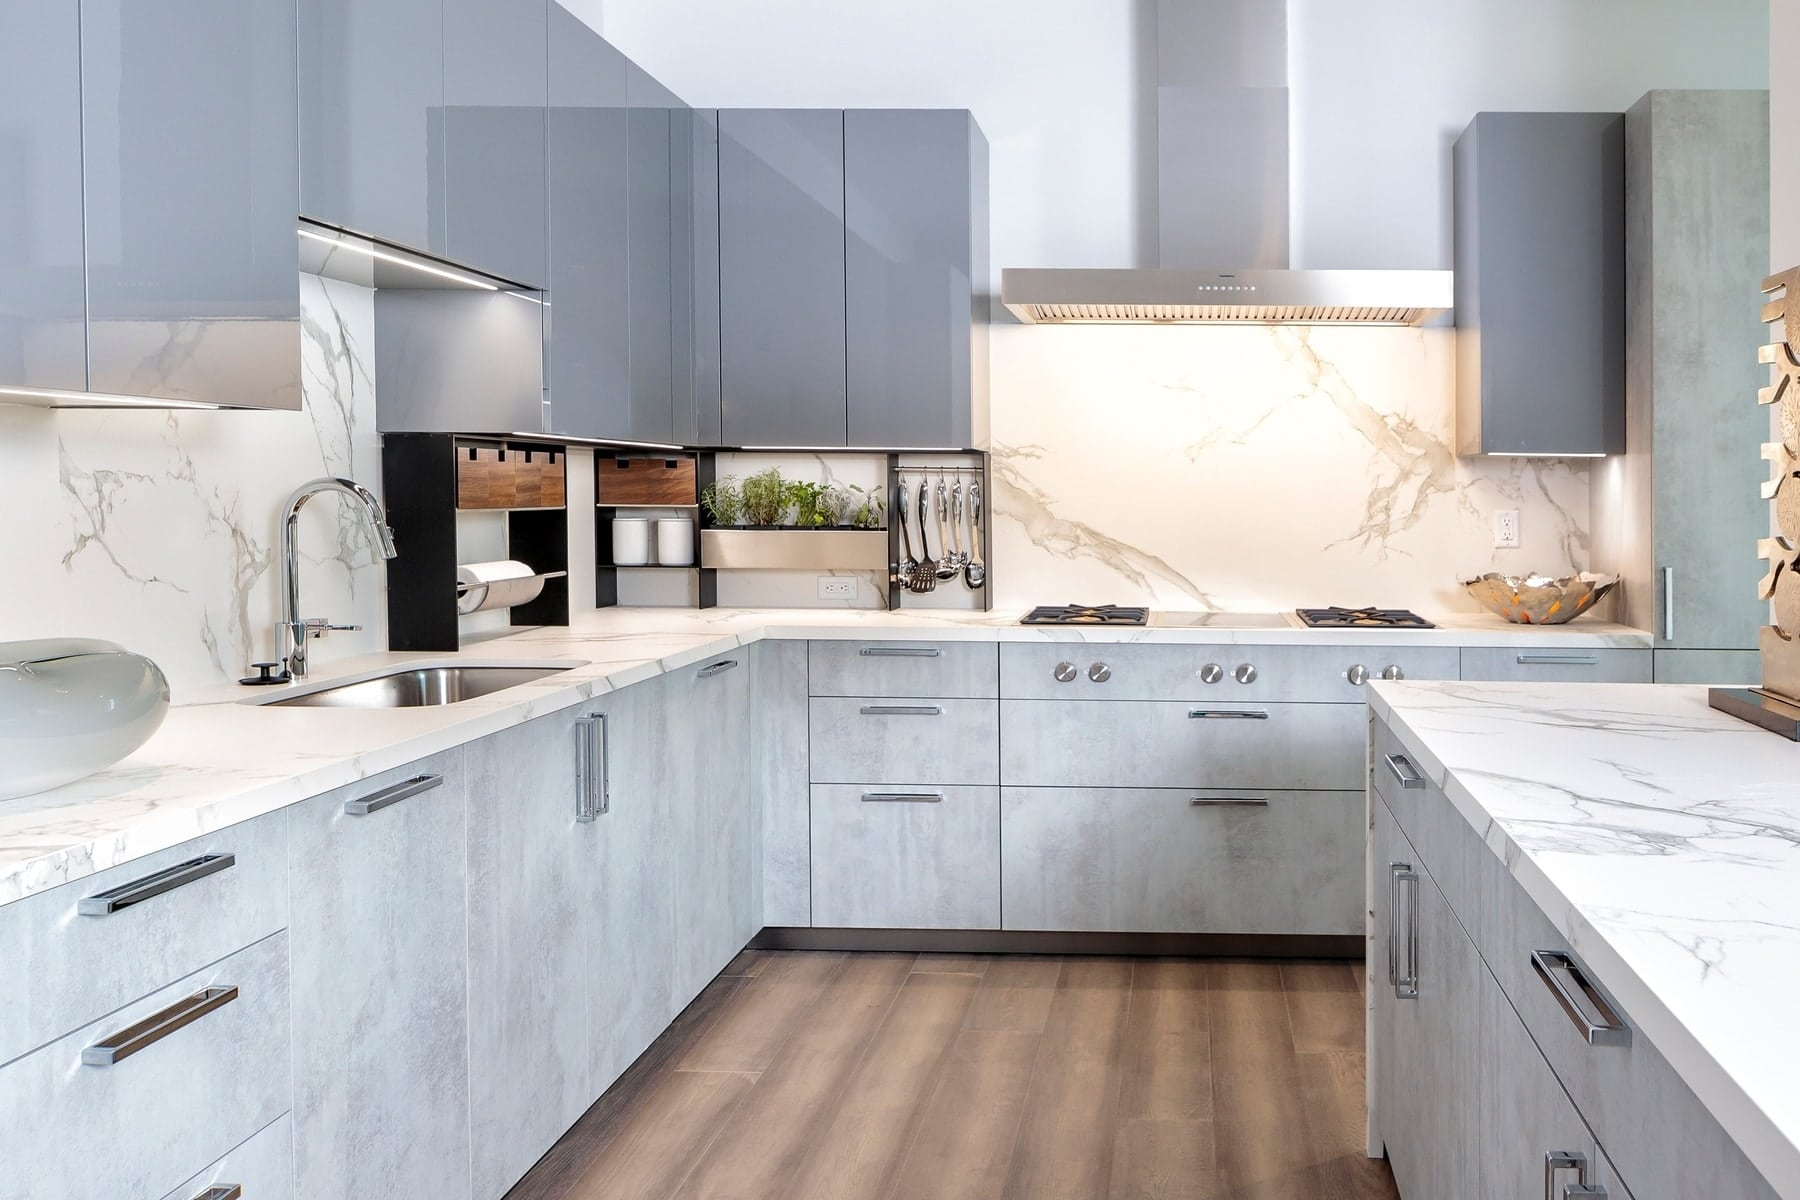 eggersmann luxury kitchen with two-tone cabinets and marble countertops